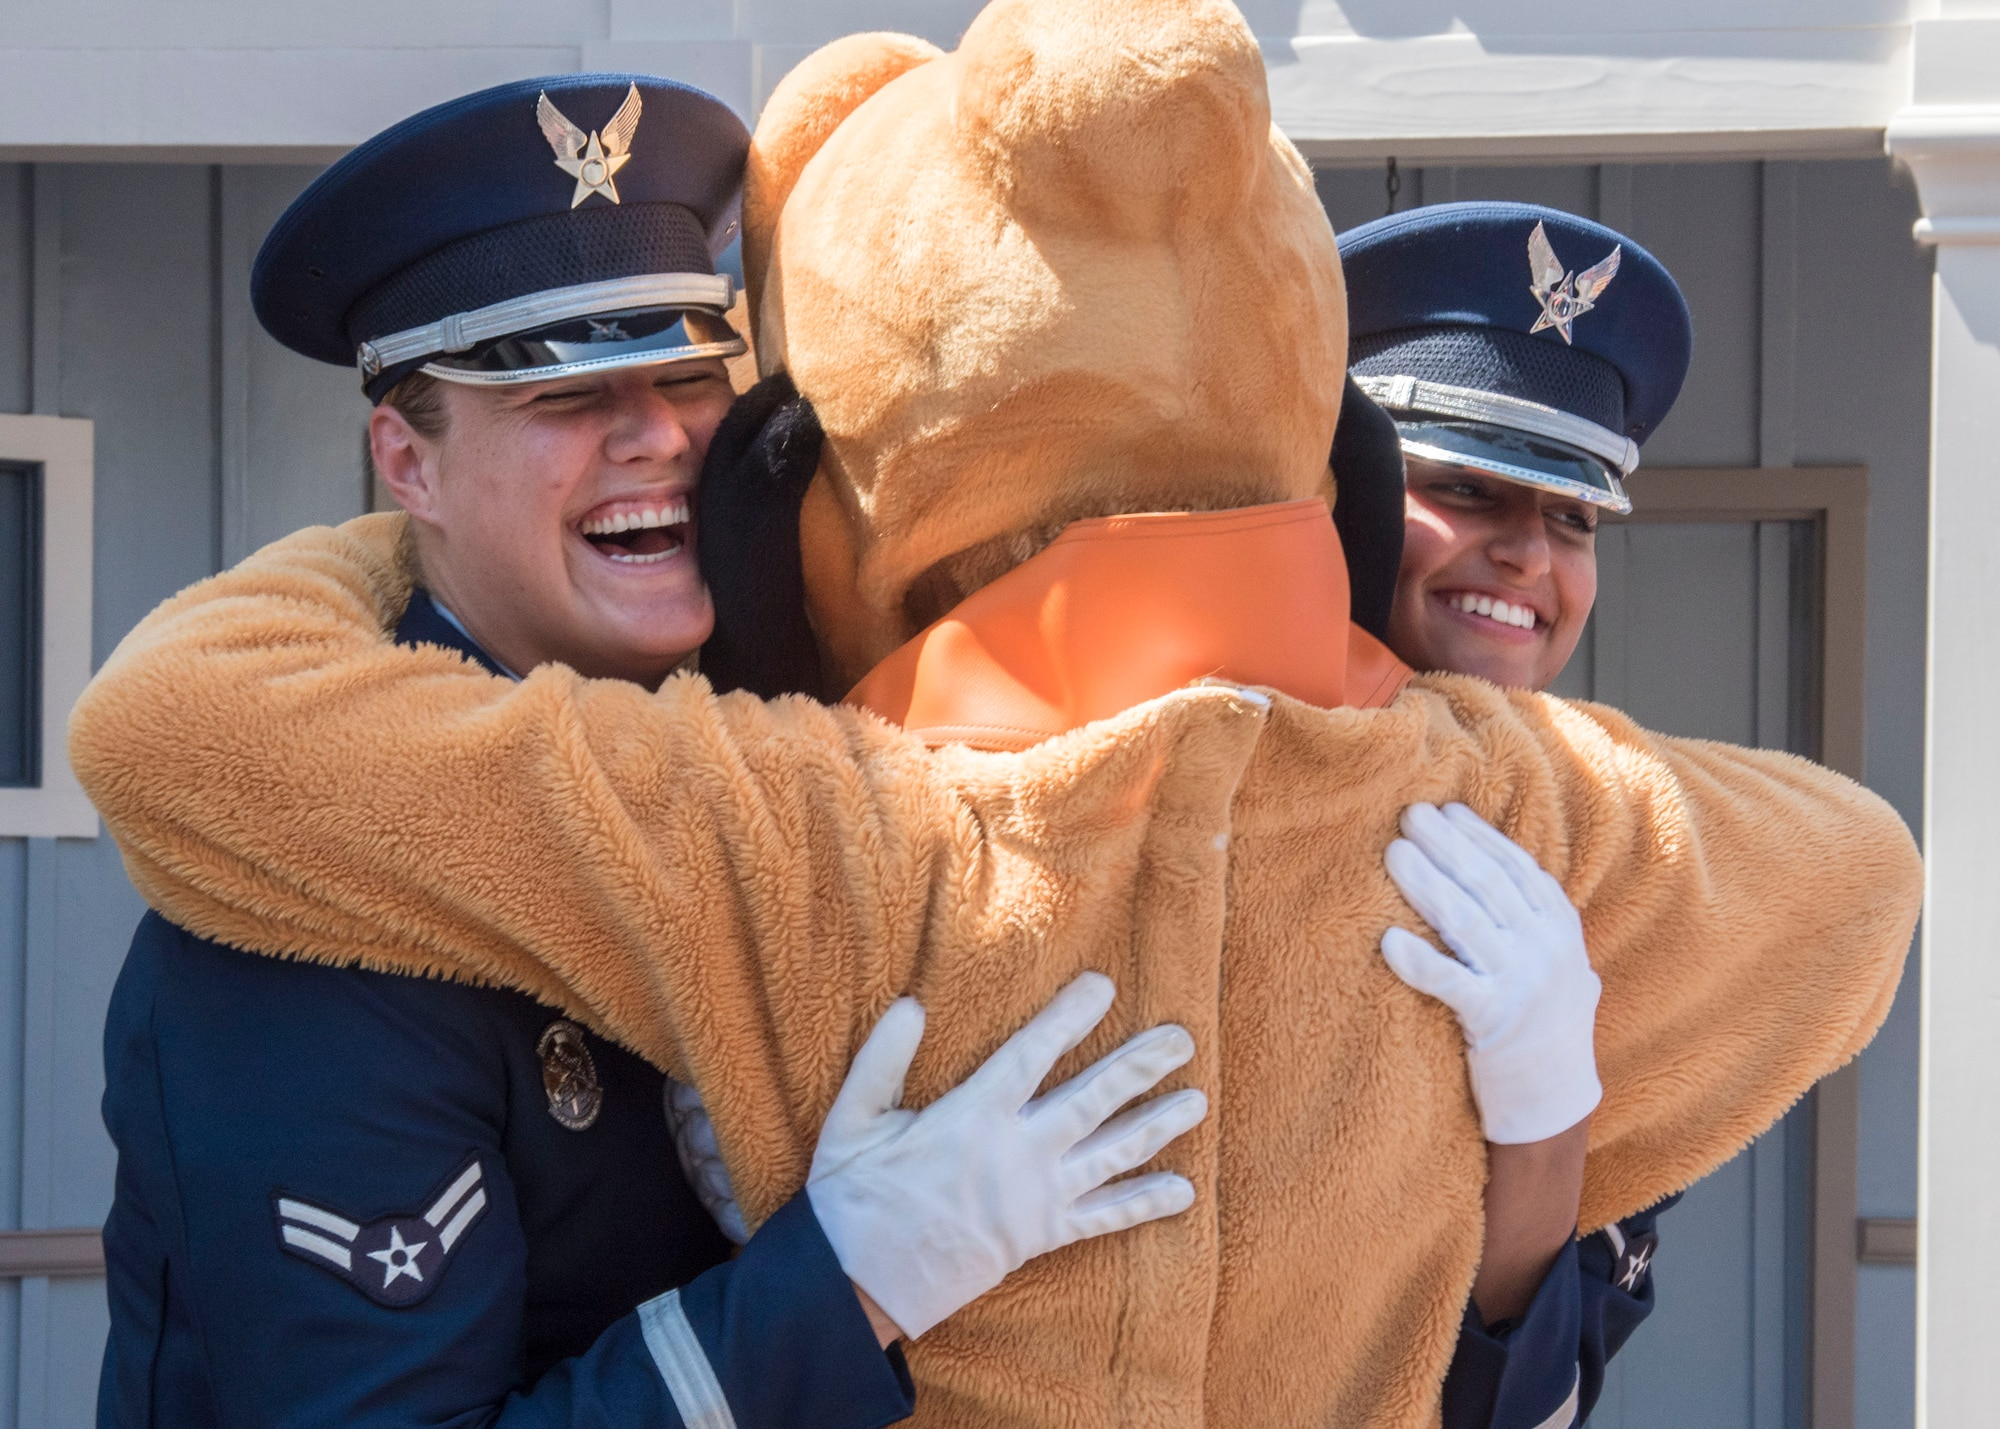 Airman 1st Class Alyssa VanGorder, left, and Airman Daniella Bejarano, right, U.S. Air Force Honor Guard ceremonial guardsmen, hug the Disney character Goofy at Disneyland in Anaheim, Calif., June 29, 2017. In order to perform across the country with collective accuracy, the team practiced the routine approximately six times together before leaving Joint Base Anacostia-Bolling, District of Columbia, and prior to the start of each performance day on the trip. (U.S. Air Force photo by Senior Airman Jordyn Fetter)